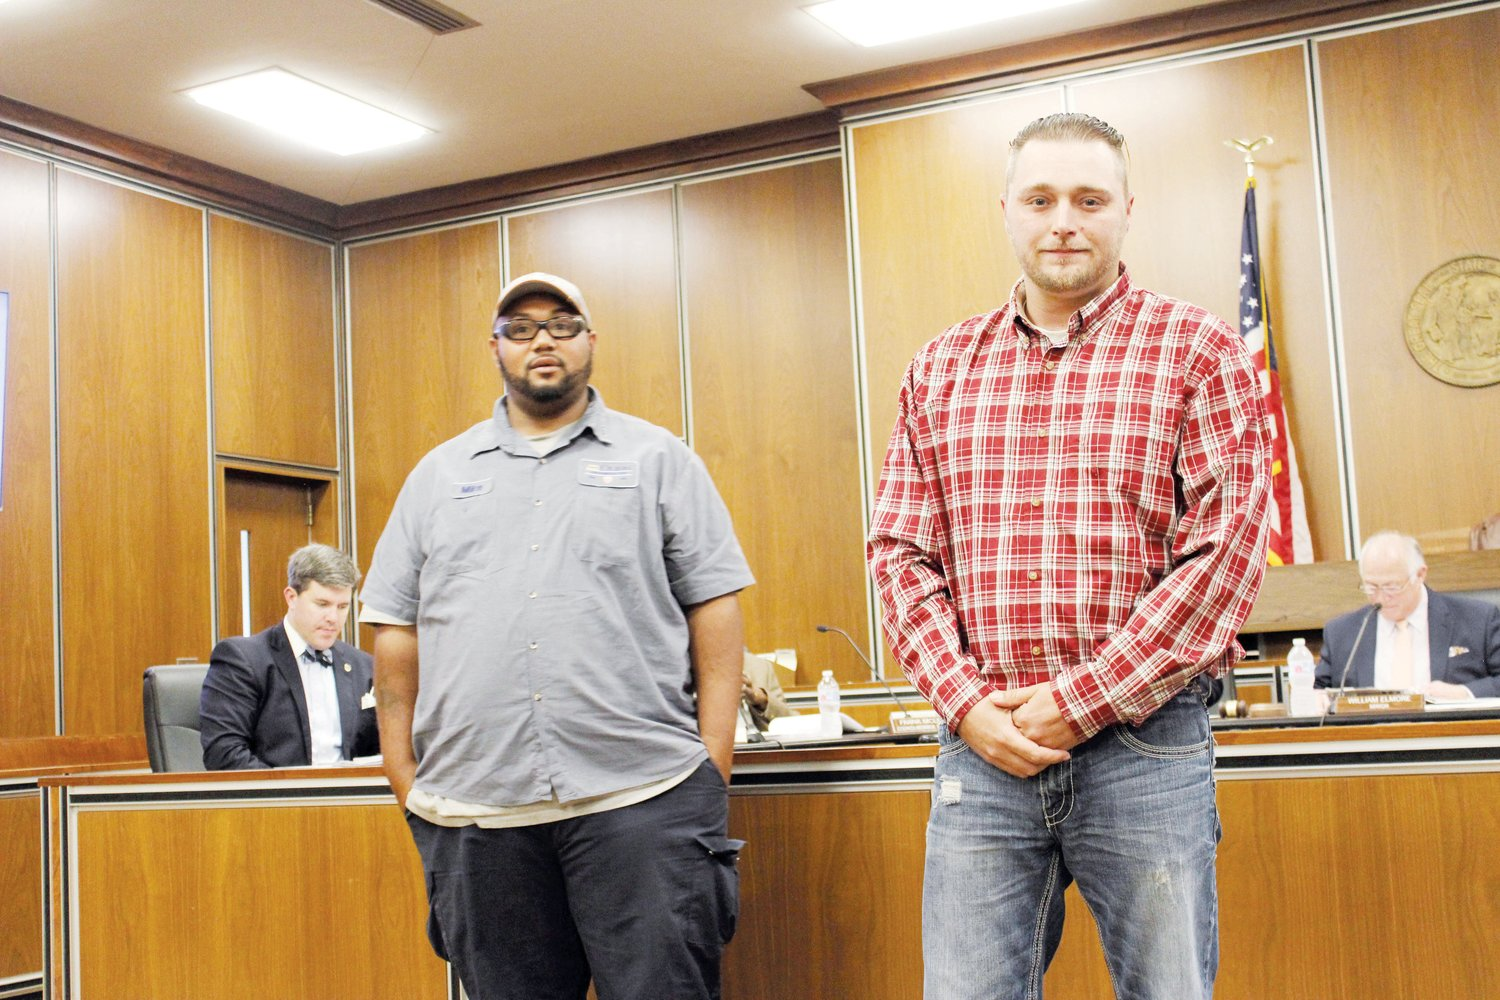 City welcomes new employees..Christopher R. O'Brien, right, and Michael A. McNeill were welcomed by Dunn City Council and others at the council's meeting Tuesday night. O'Brien and McNeill are new utility maintenance workers with the city.